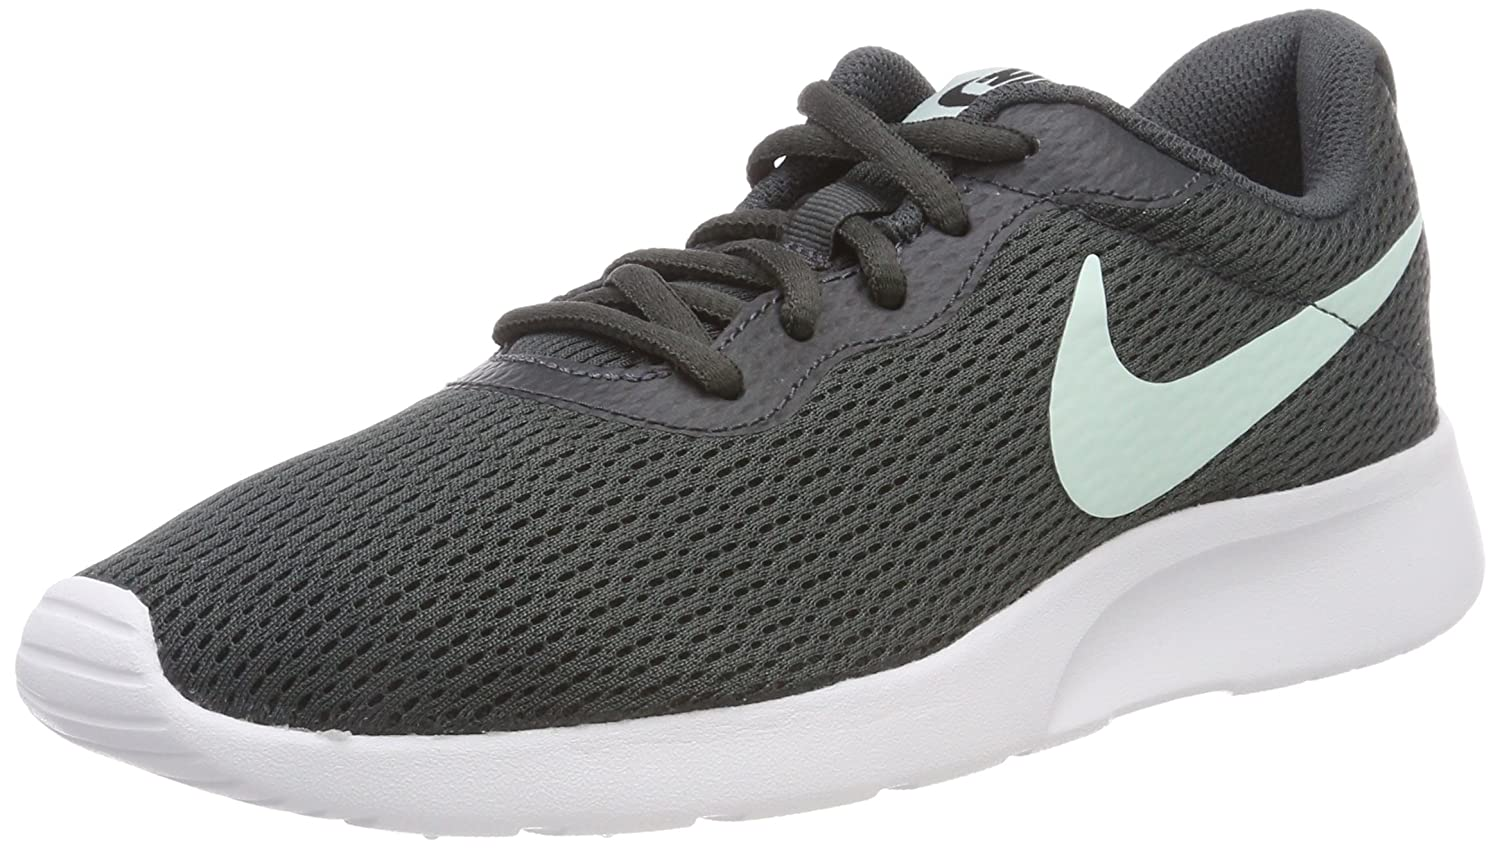 57dd9987e2 NIKE Women's Tanjun Running Shoes B07BKW5JRB 11 B(M) US|Anthracite/Igloo